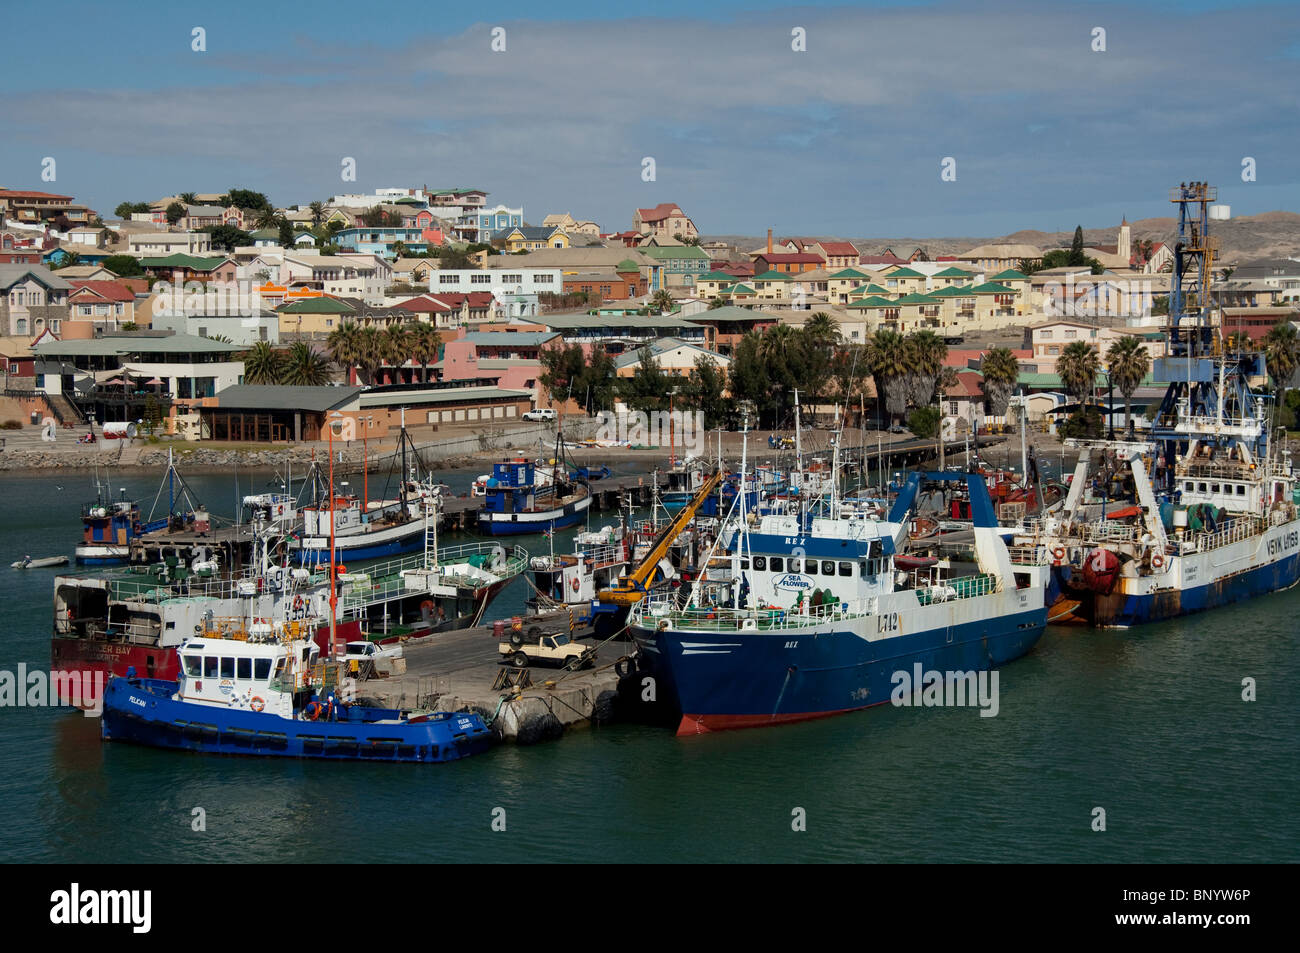 Africa, Namibia, Luderitz. Waterfront port area of Luderitz, fishing boats. - Stock Image